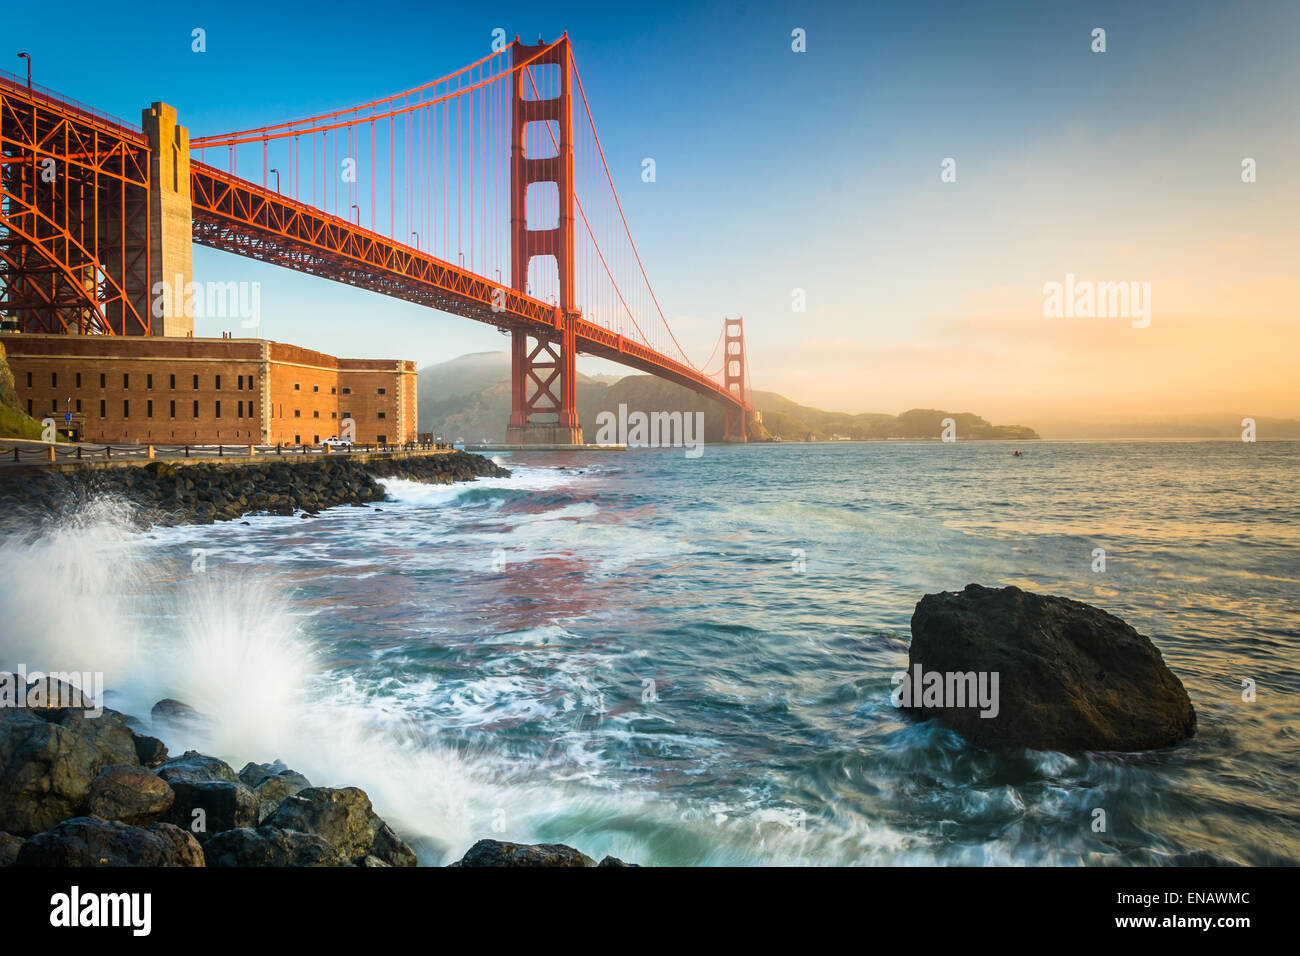 The Golden Gate Bridge, seen at sunrise from Fort Point, San Francisco, California. - Stock Image